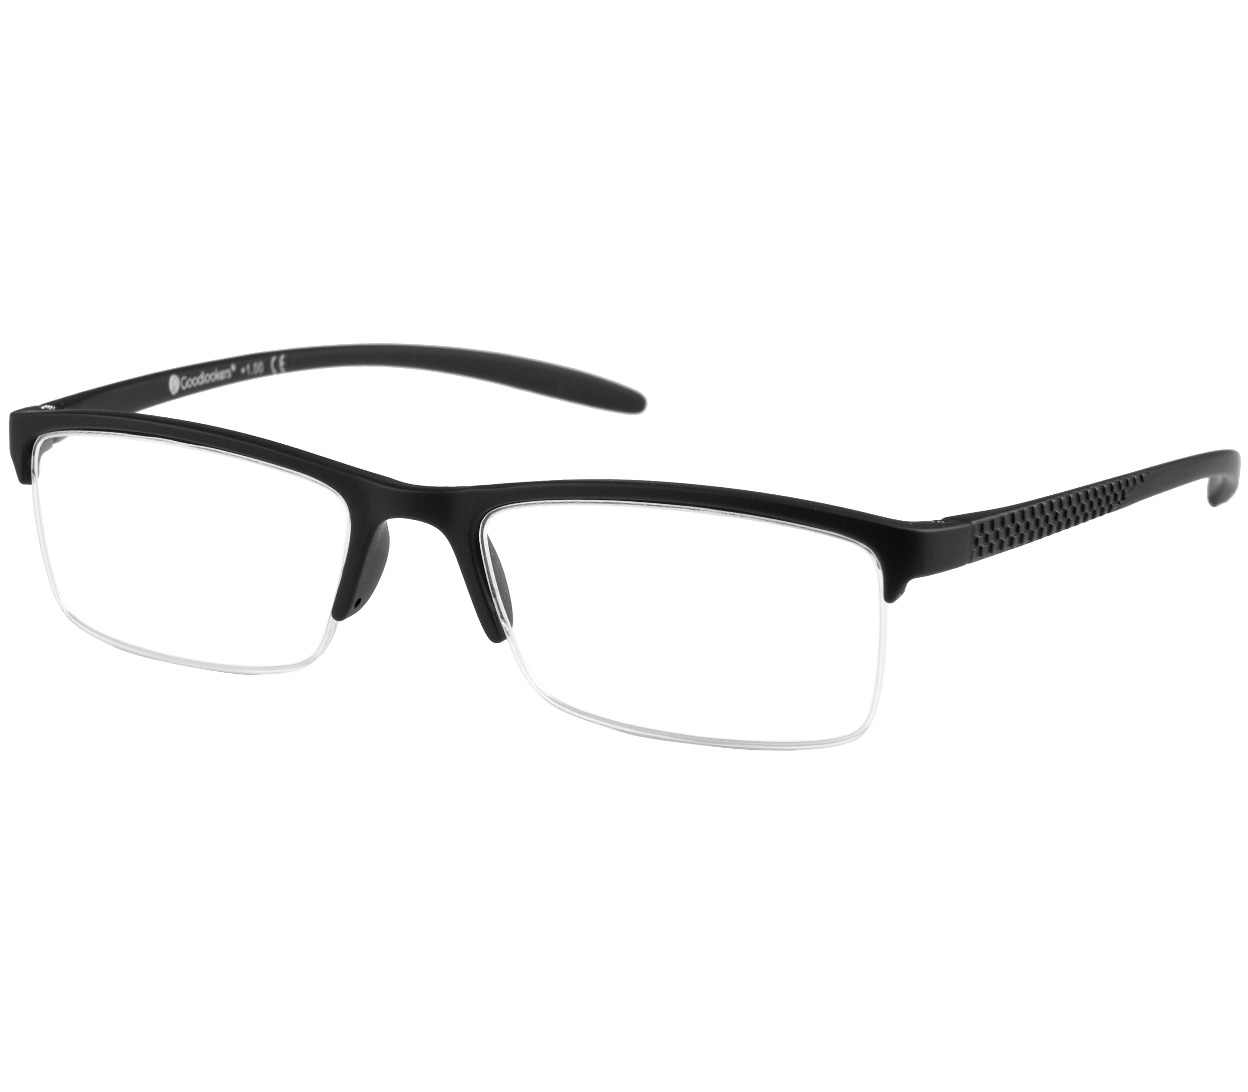 Main Image (Angle) - Parliament (Black) Semi-rimless Reading Glasses